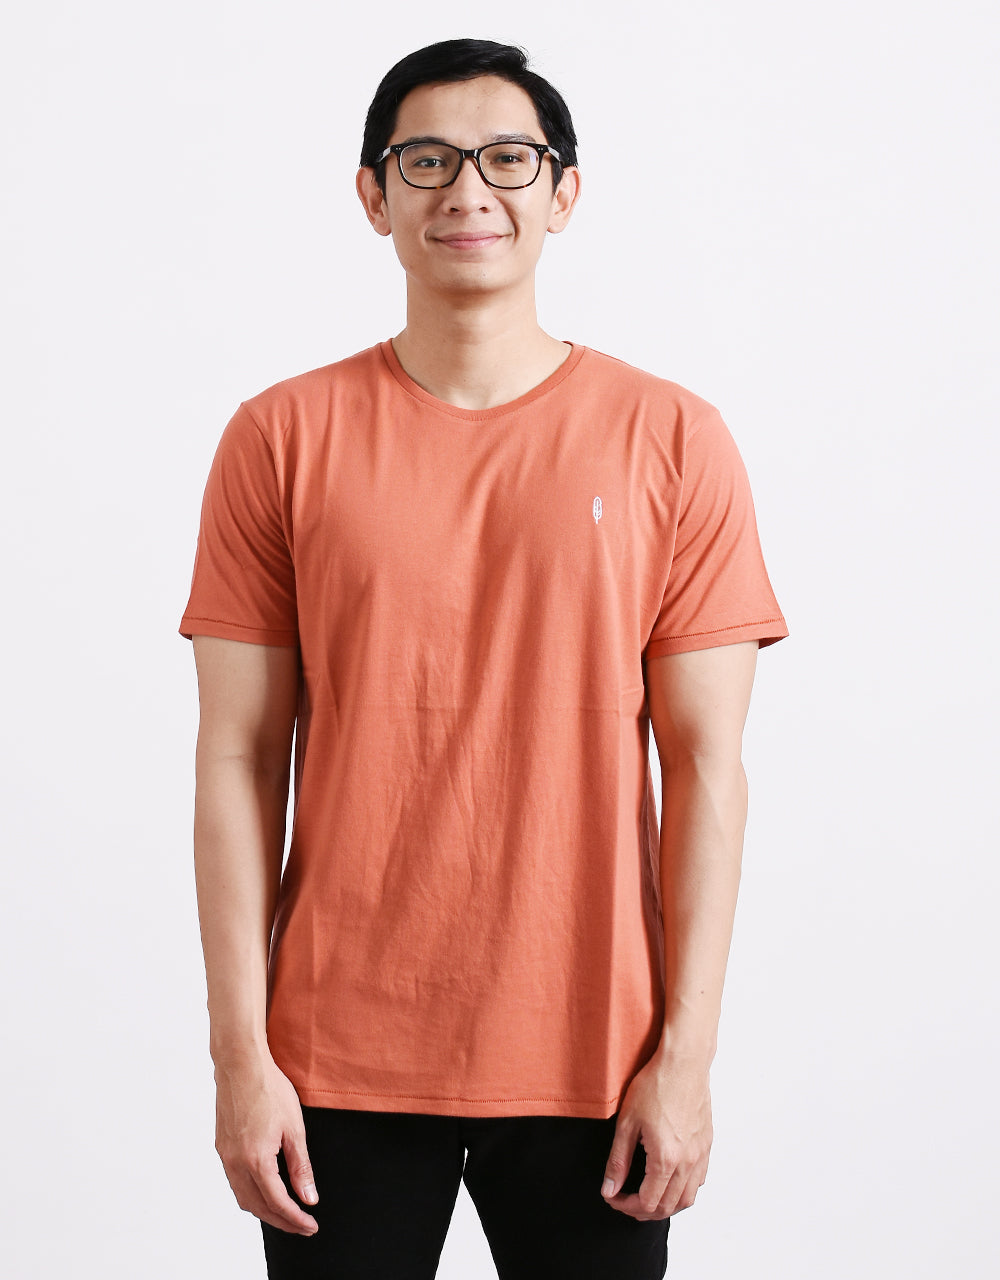 Intention 9 Basic Tees